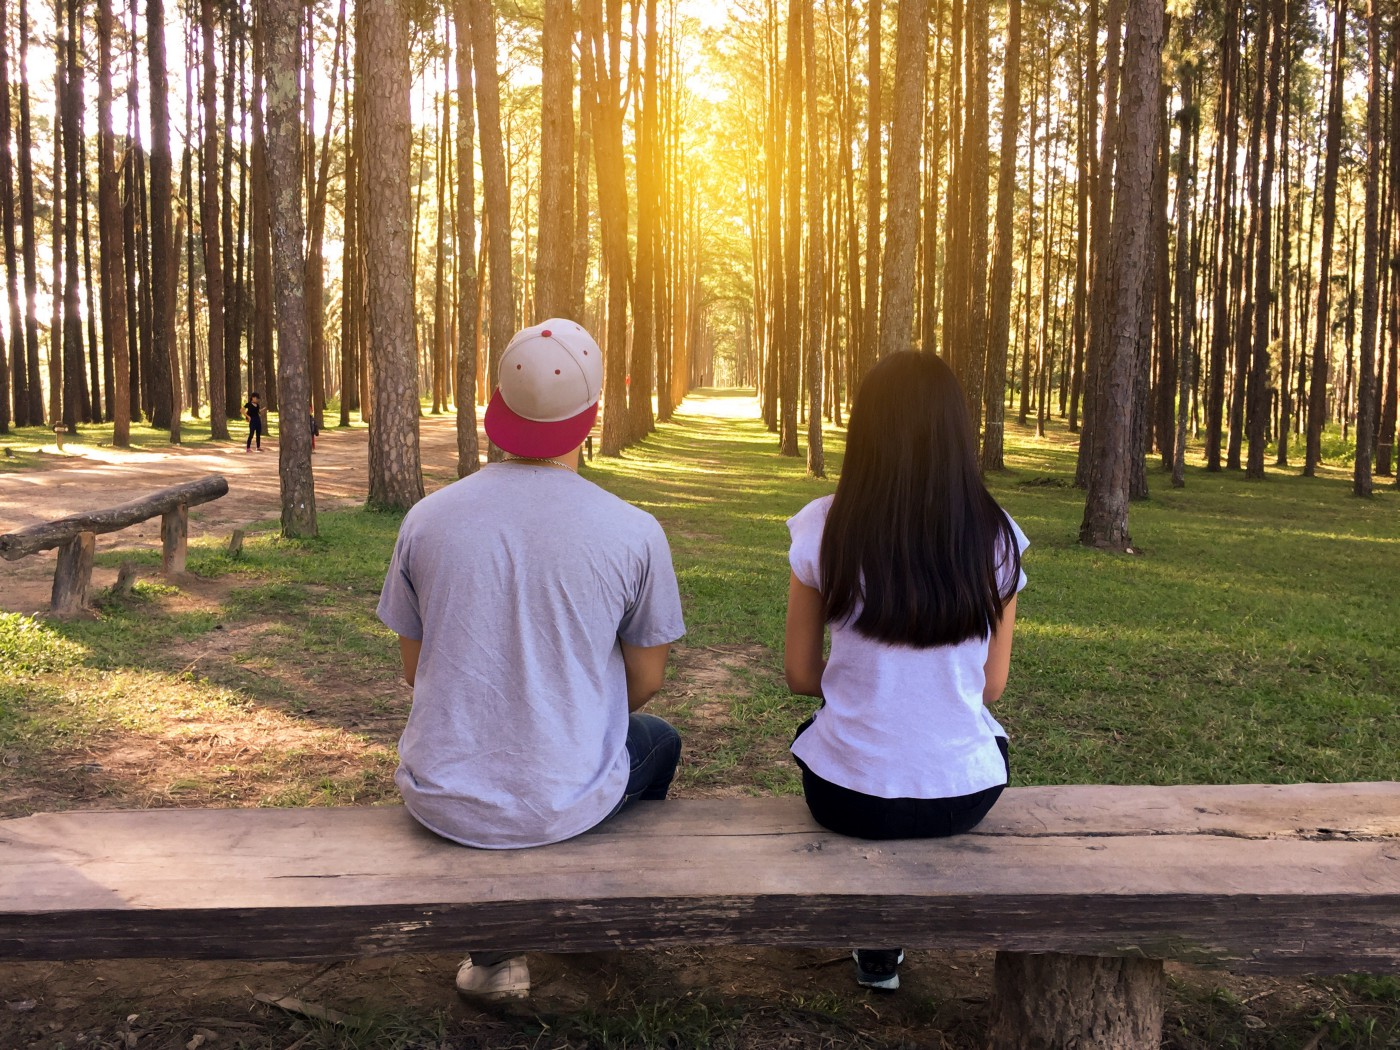 Two teens sit on wooden bench side-by-side with backs to camera looking at a field of trees and sun shining through.